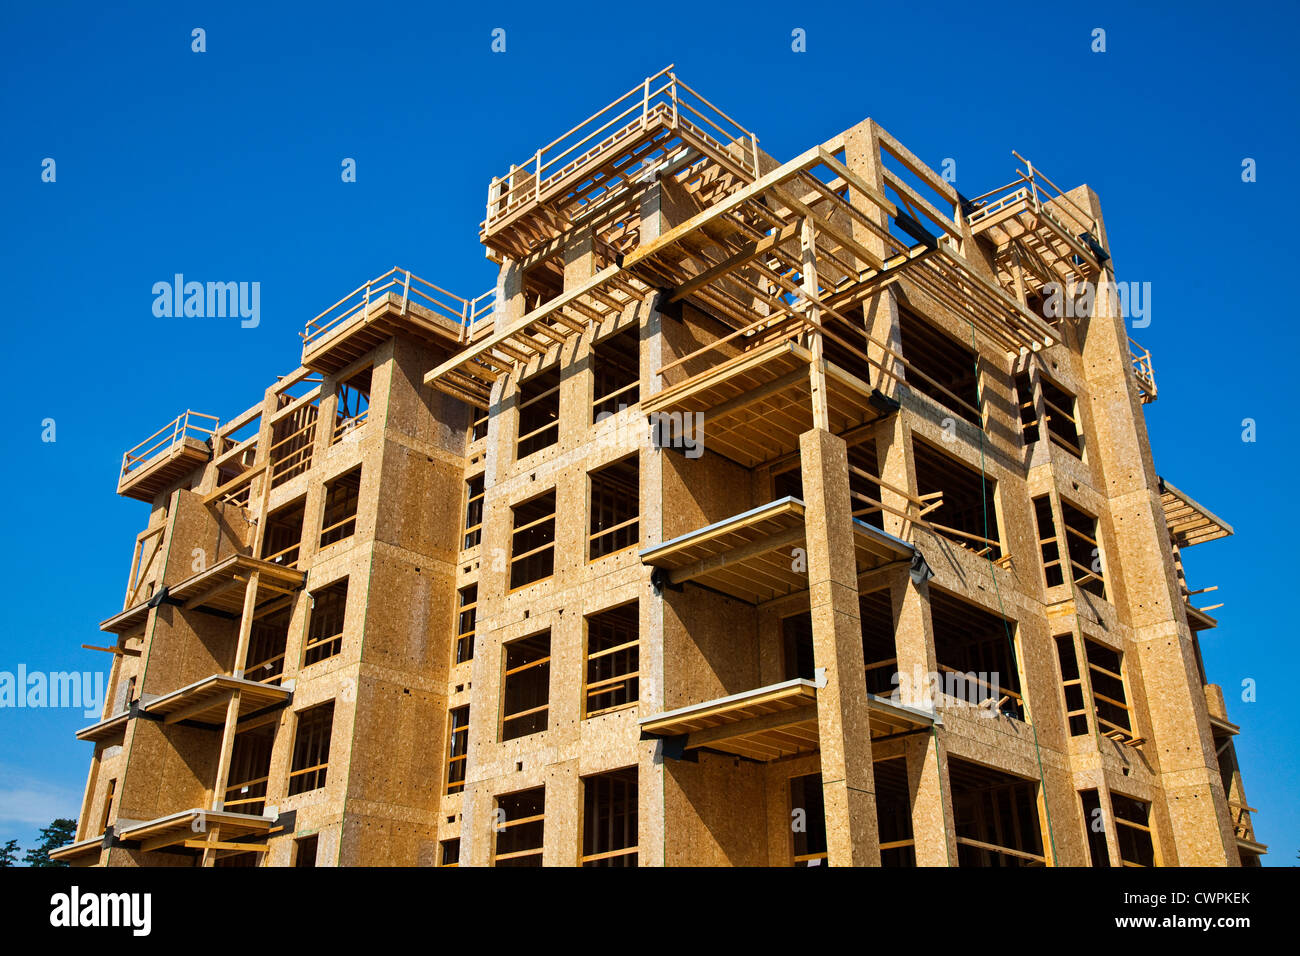 Wooden frame construction design reviews